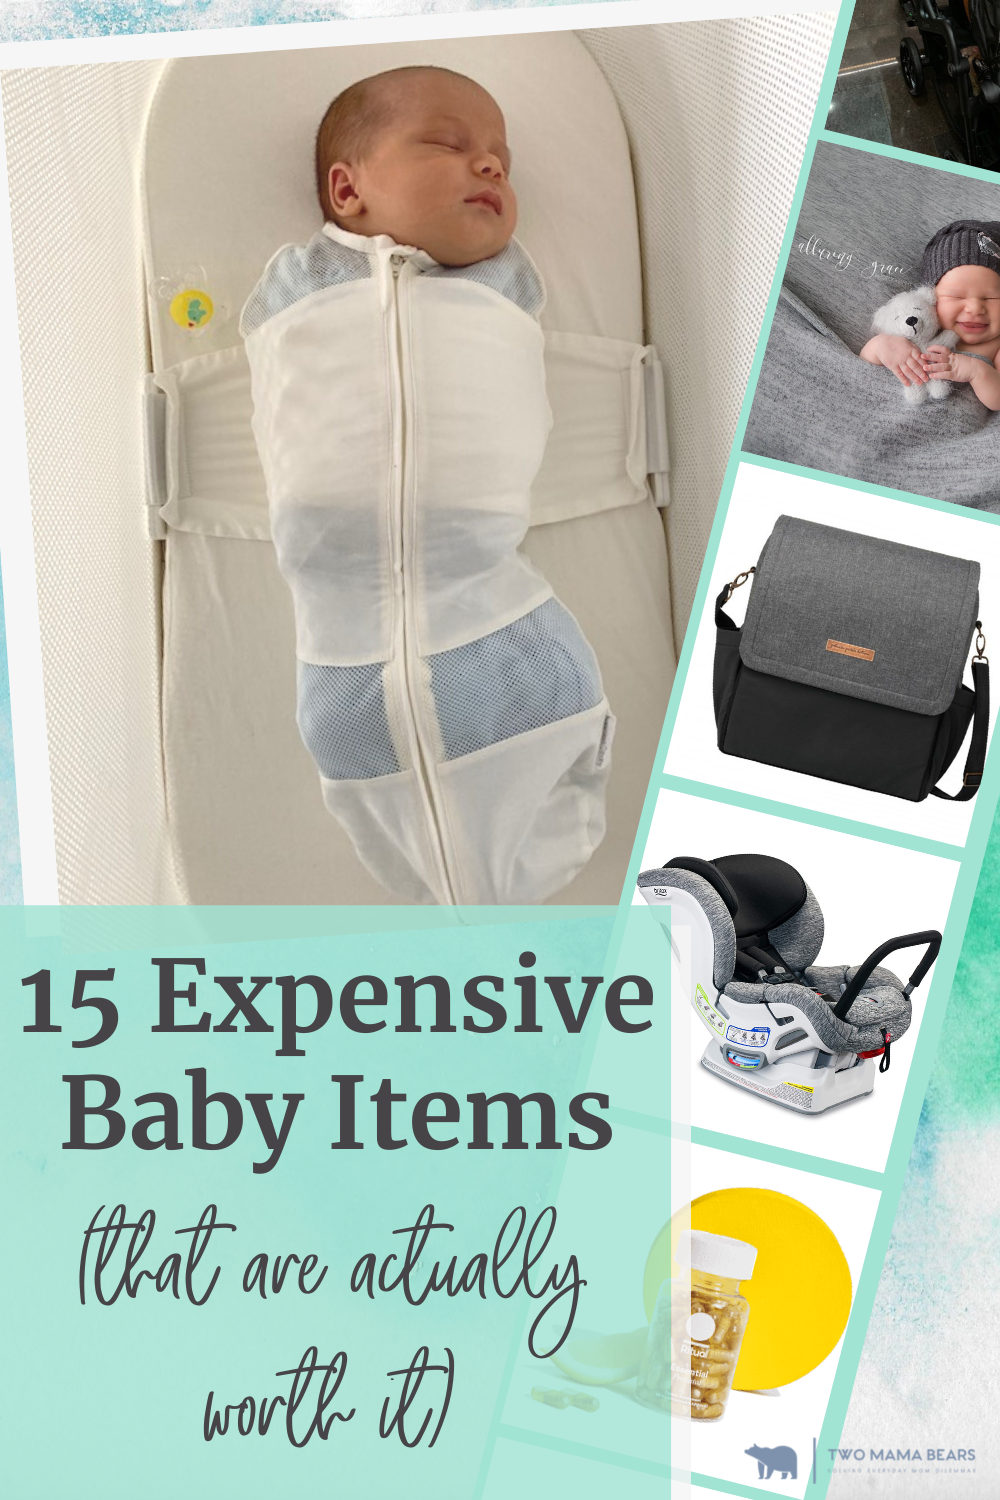 15 Expensive Baby Items That Are Actually Worth the Money